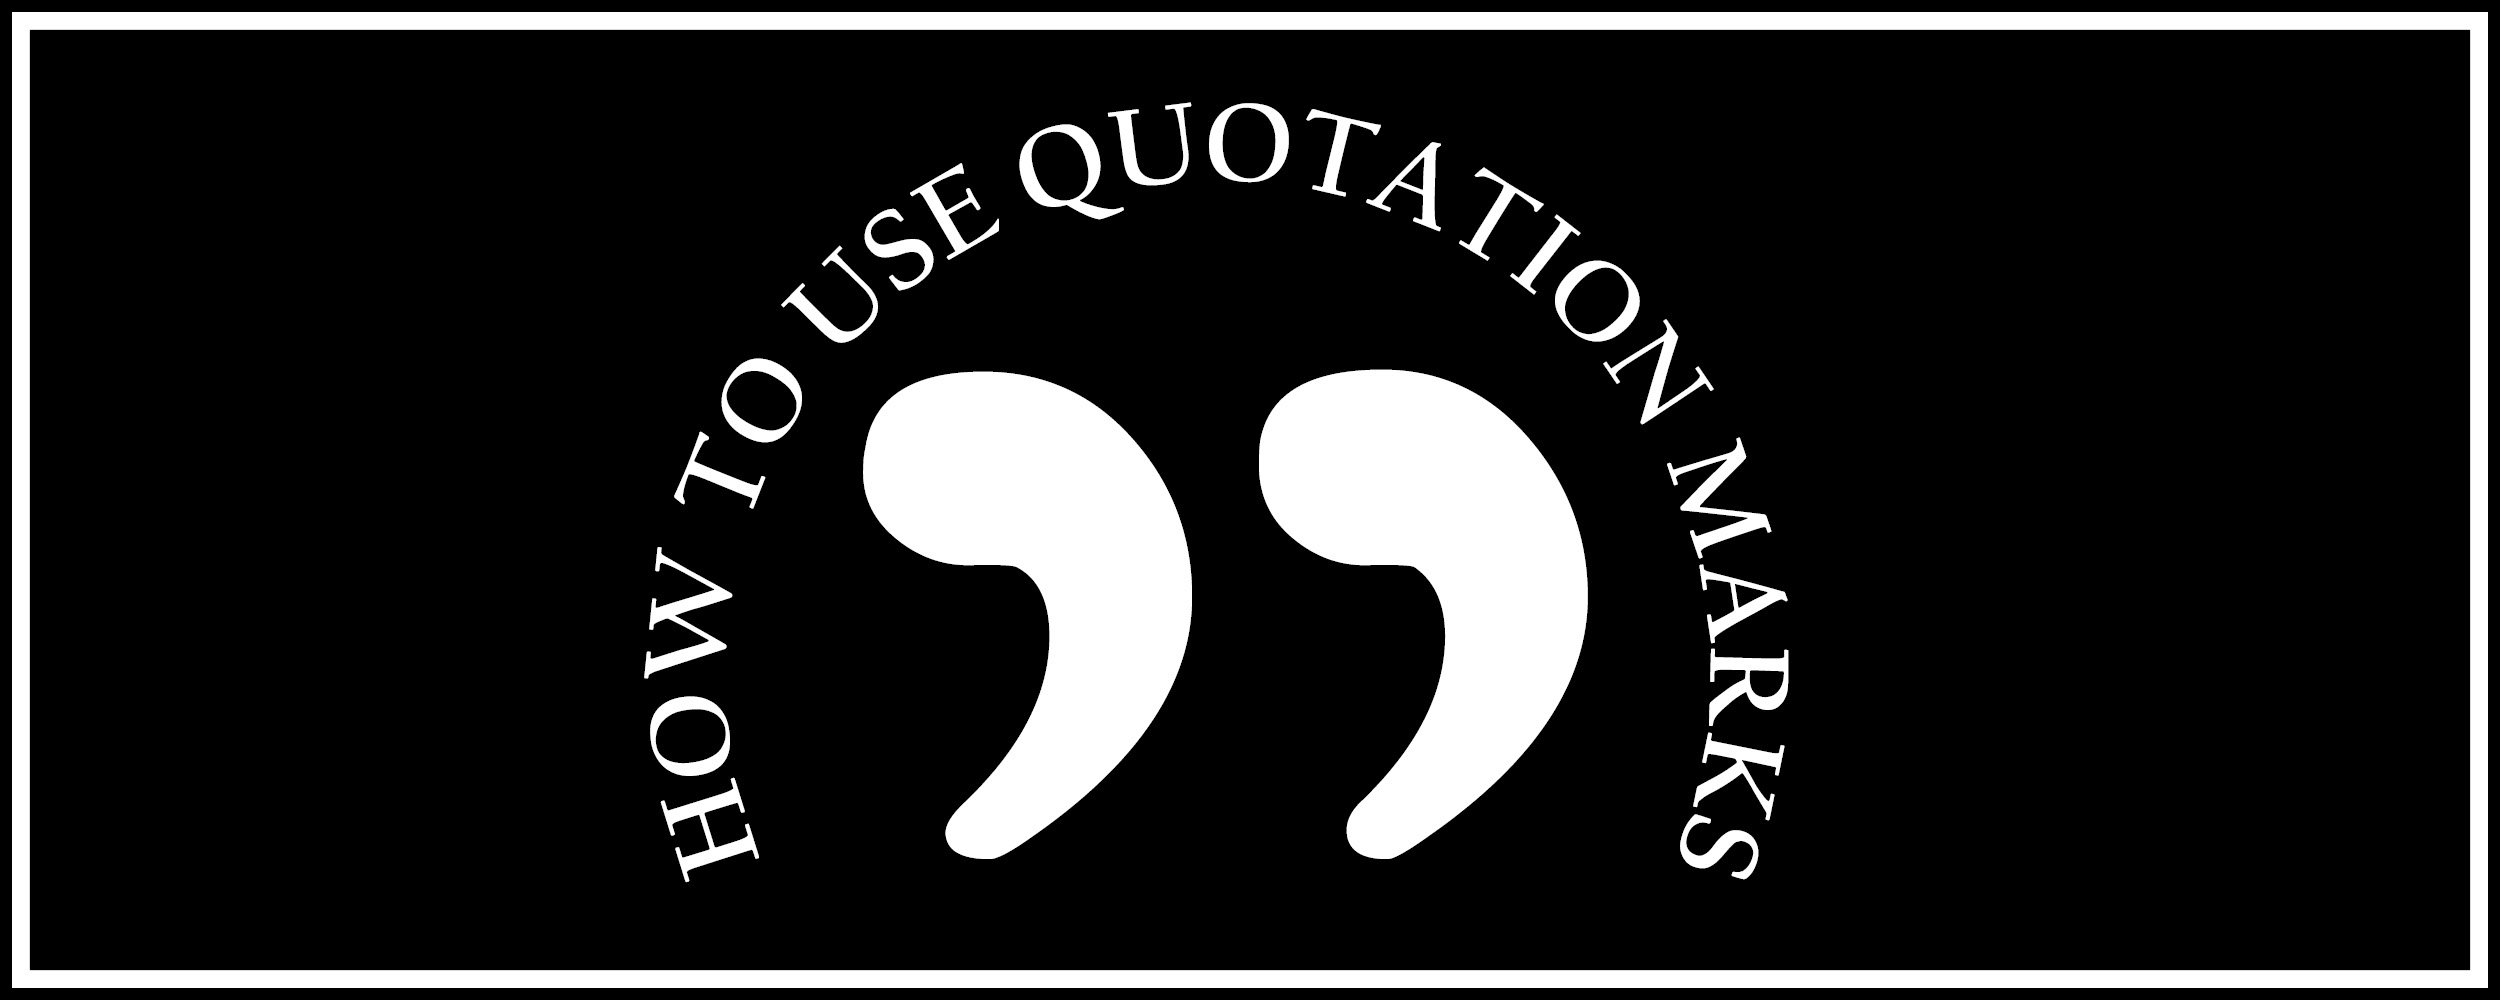 How To Use Quotation Marks The Visual Communication Guy